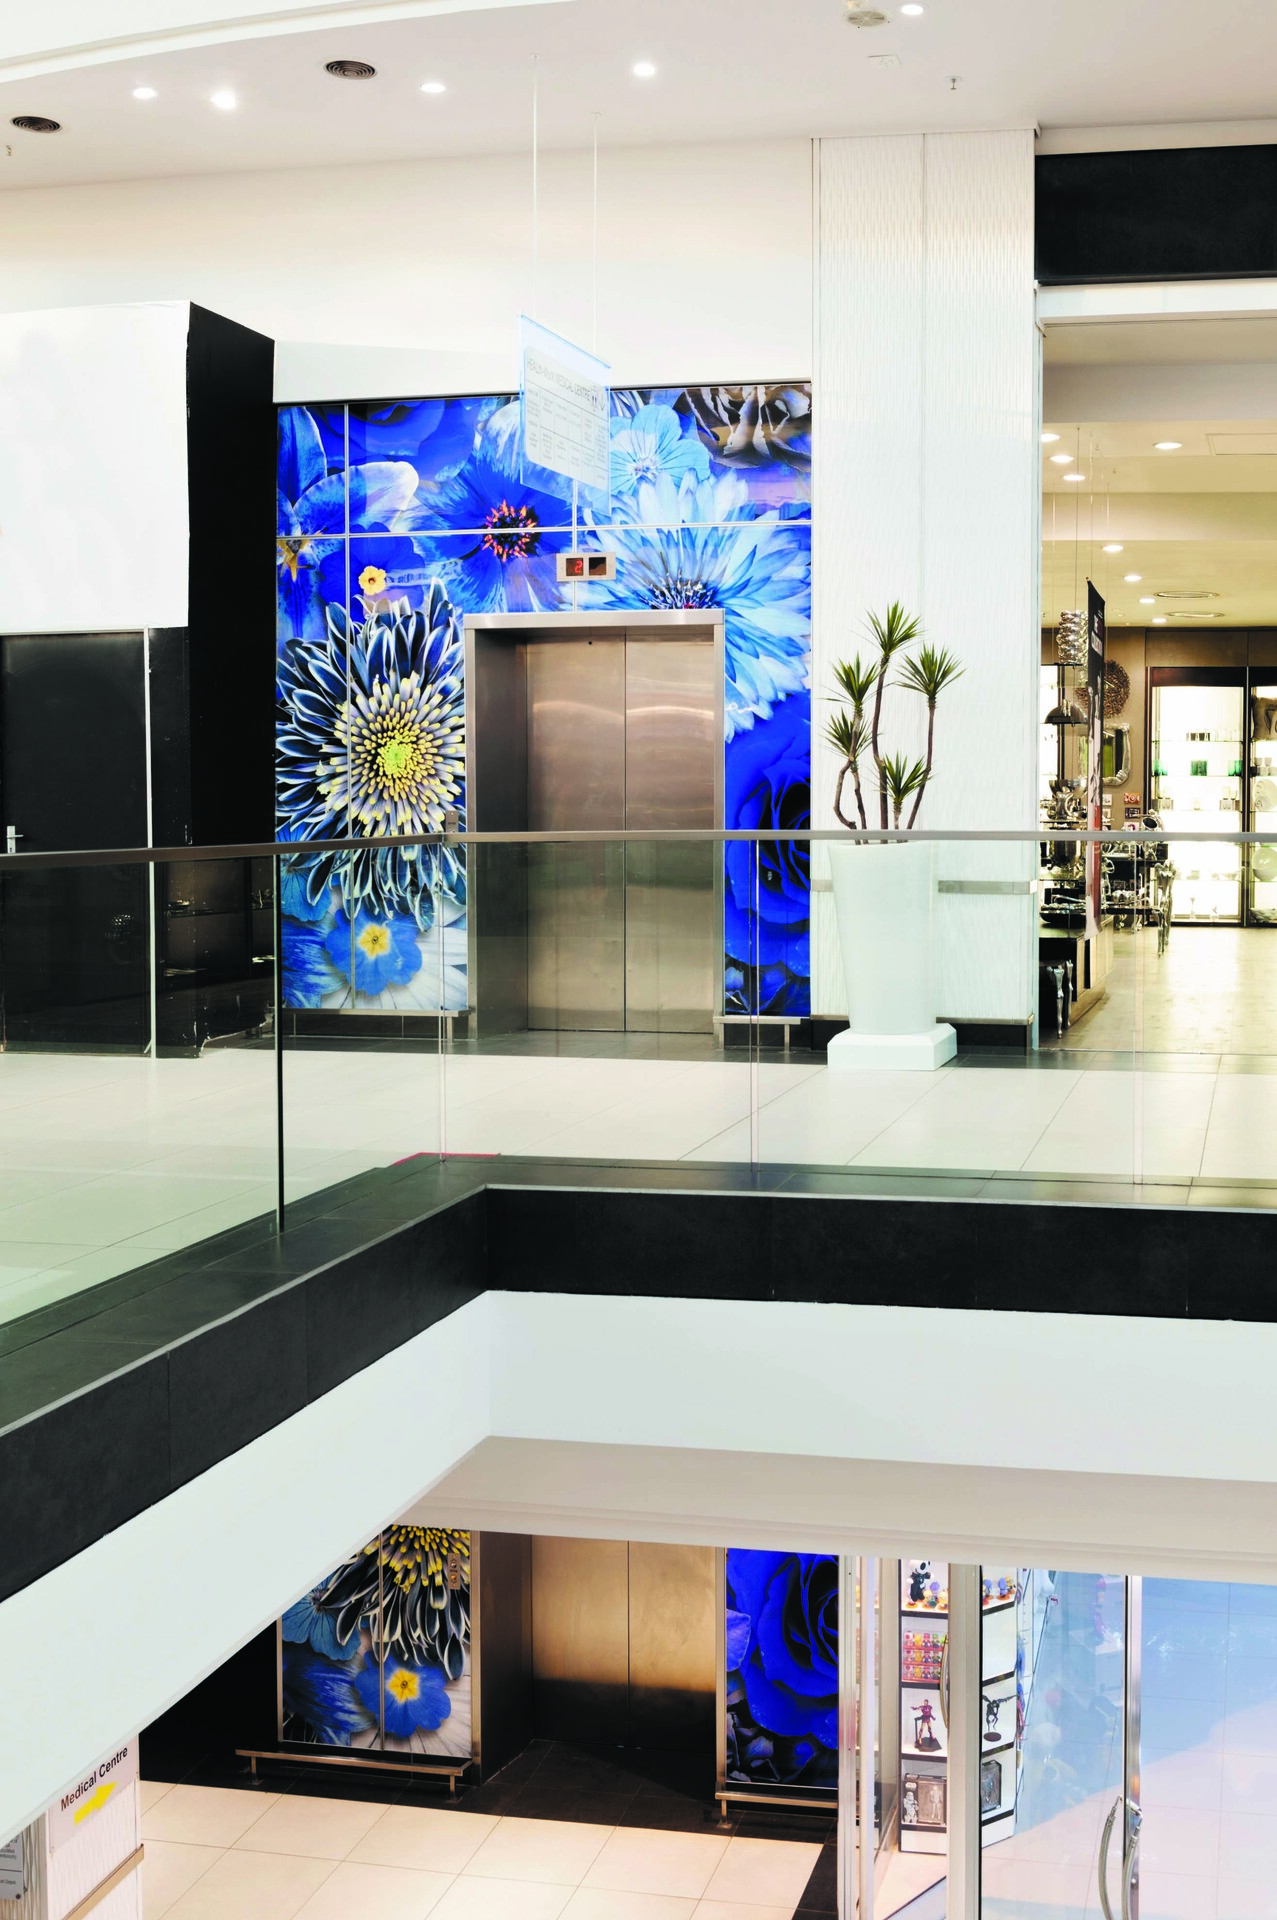 Add personalization or branding with beautiful wall graphics.  This shopping center used a floral design to create a easy way for shoppers to spot the elevators.  Fusion can elevate your brand or personalize your home on any budget. By combining our ever-expanding line of graphics or your own artwork with our more than a dozen substrate options, you can make a unique, custom design perfect for your business or home.   You can use Fusion for such applications as wall art, divider panels, displays, and large format murals allowing you to stand out from the crowd. Your imagination is the limit!